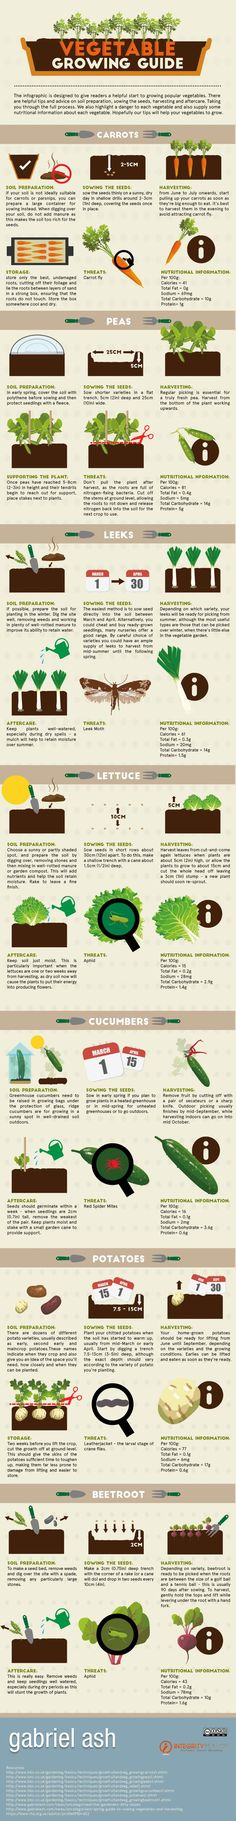 From composting, to starting your garden from scratch, to attracting pollinators, to making your garden 'greener', we've got you covered.  We recently came across this nifty infographic, Vegetable Growing Guide from Gabriel Ash and thought it worthy…